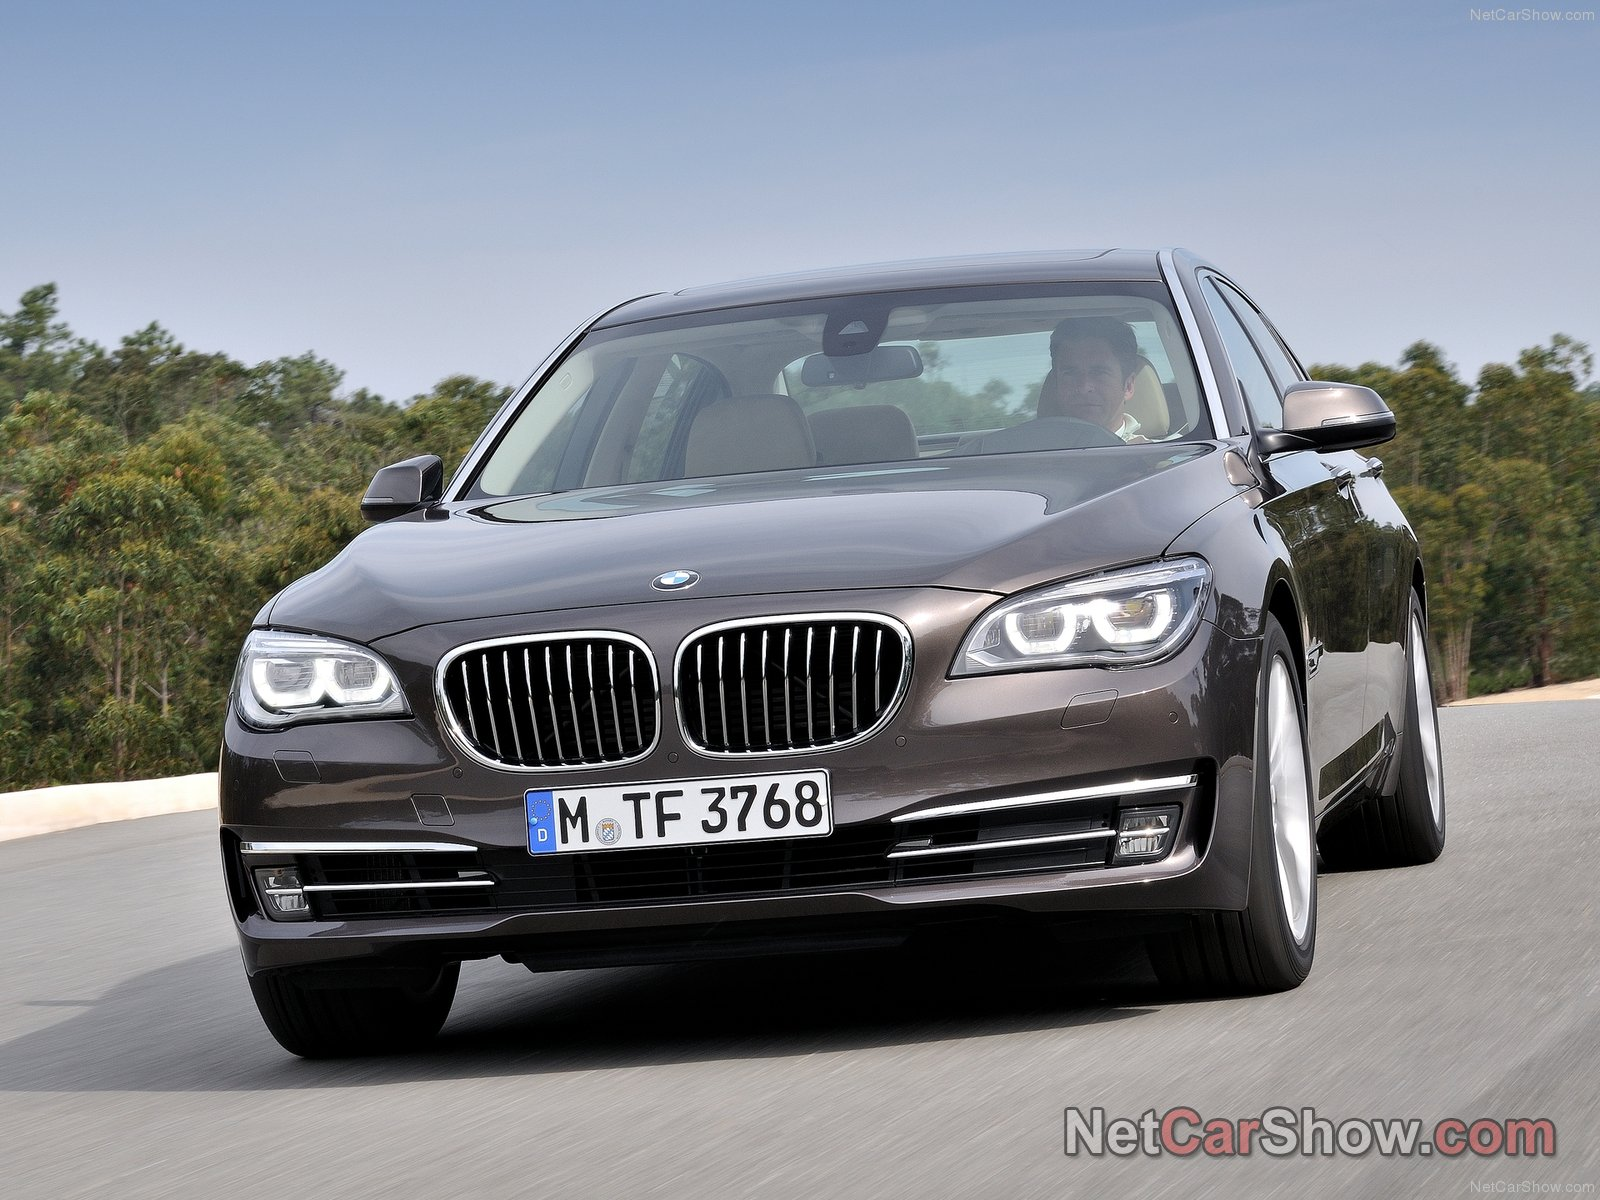 Bmw 7 series pic 95802